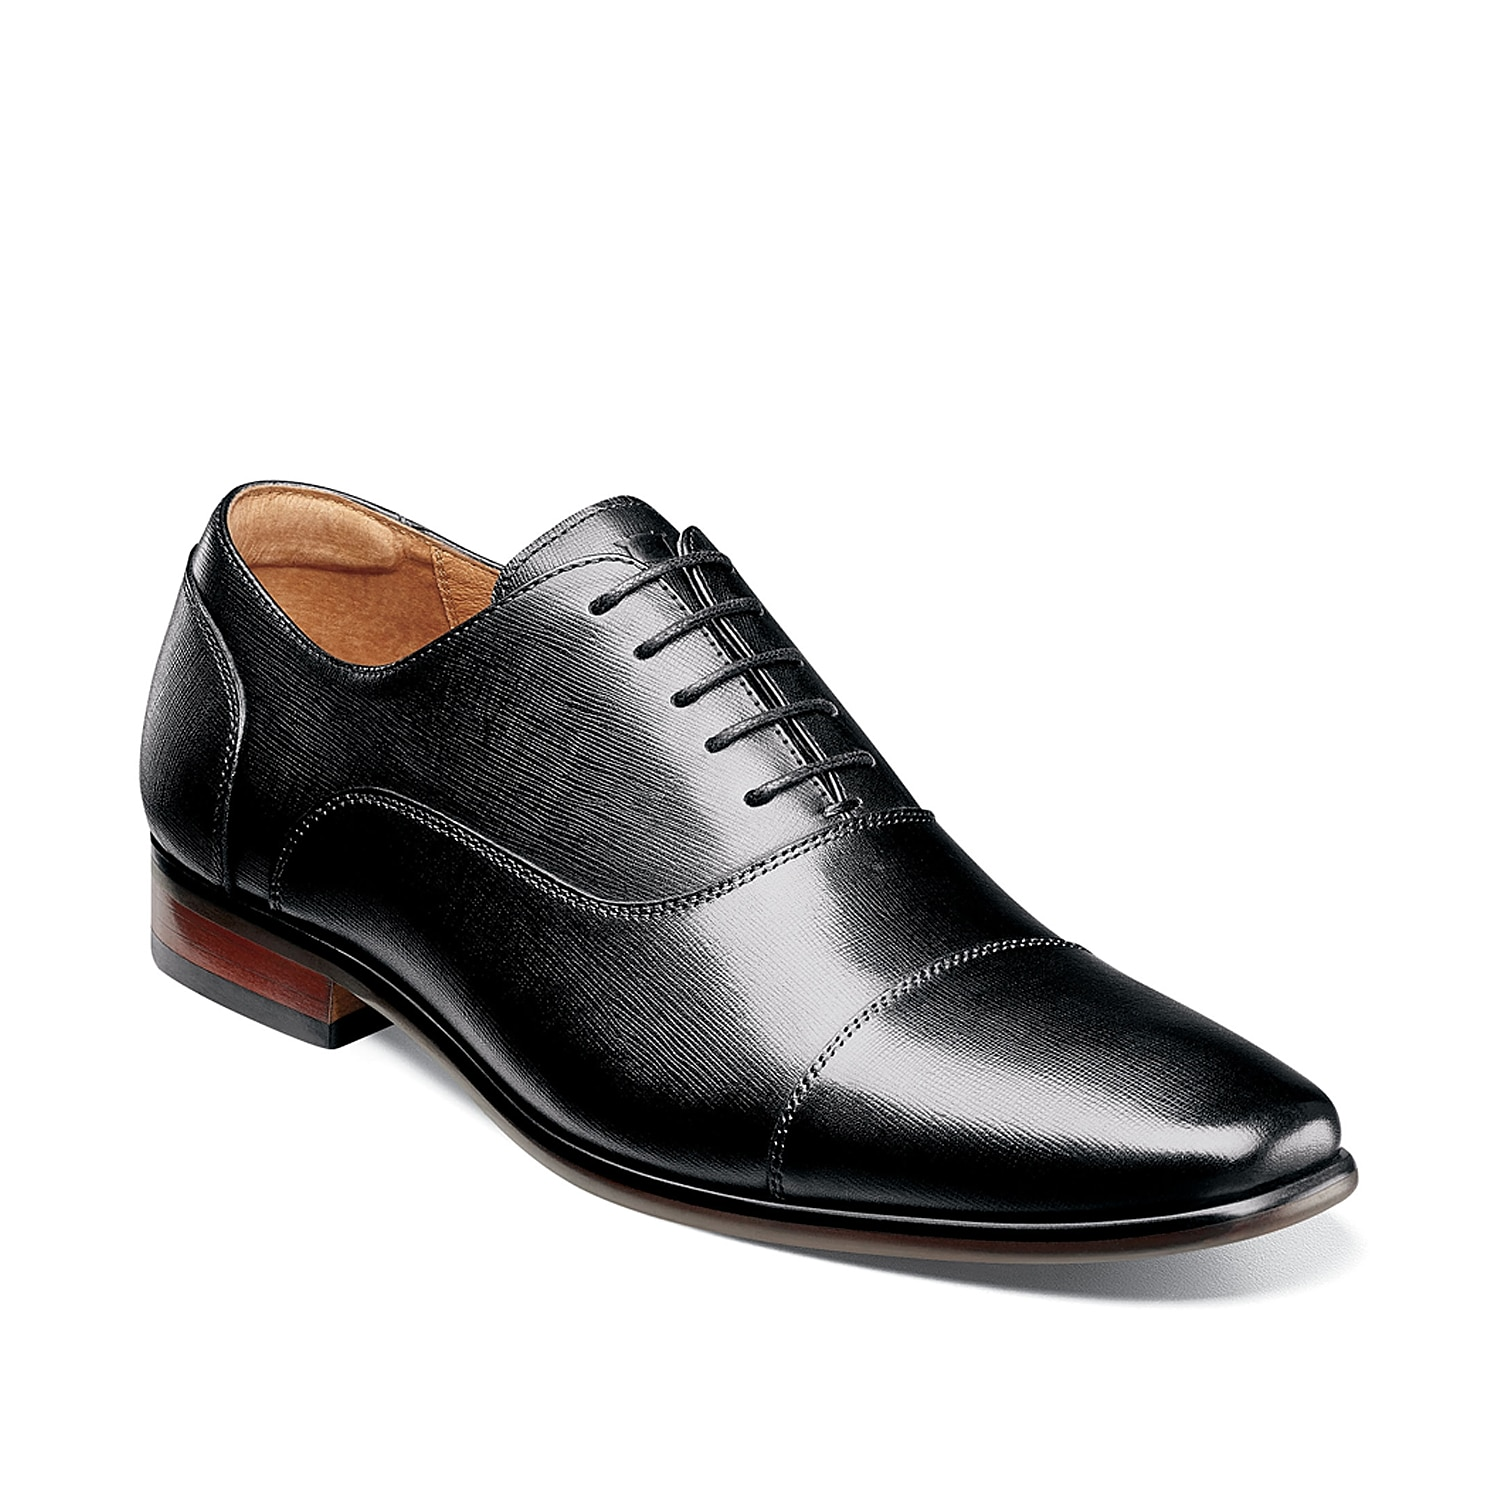 Showcase your tailored style with the Postino cap toe oxford from Florsheim. Textured leather is finished with clean stitched accents for added sophistication.